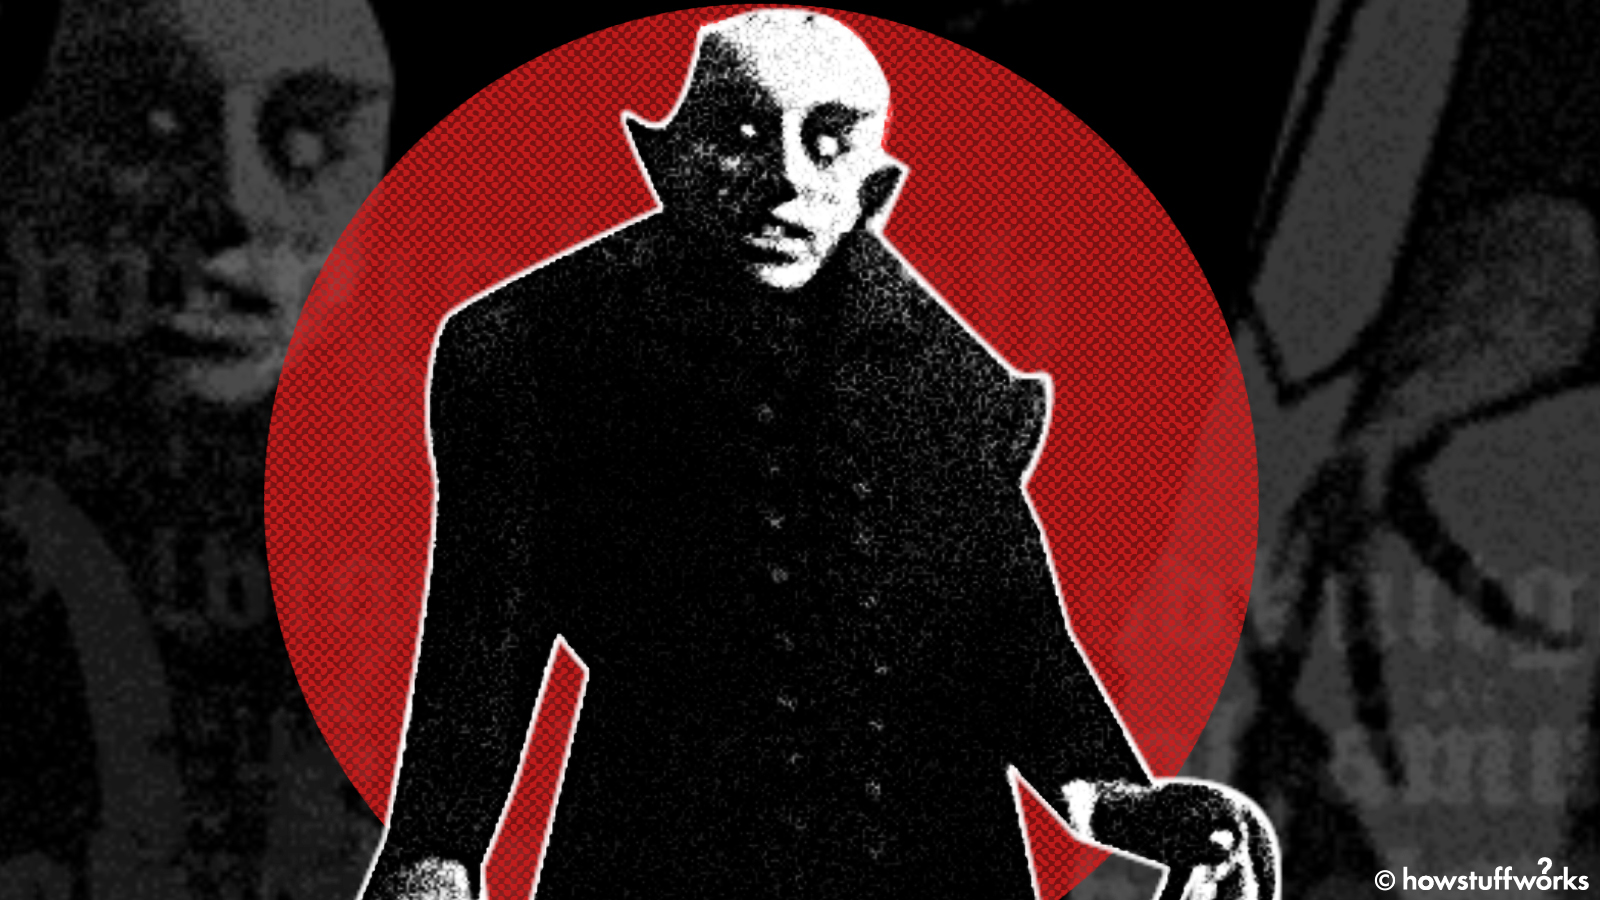 The Misrepresentation of 'Nosferatu' in Vampire Lore